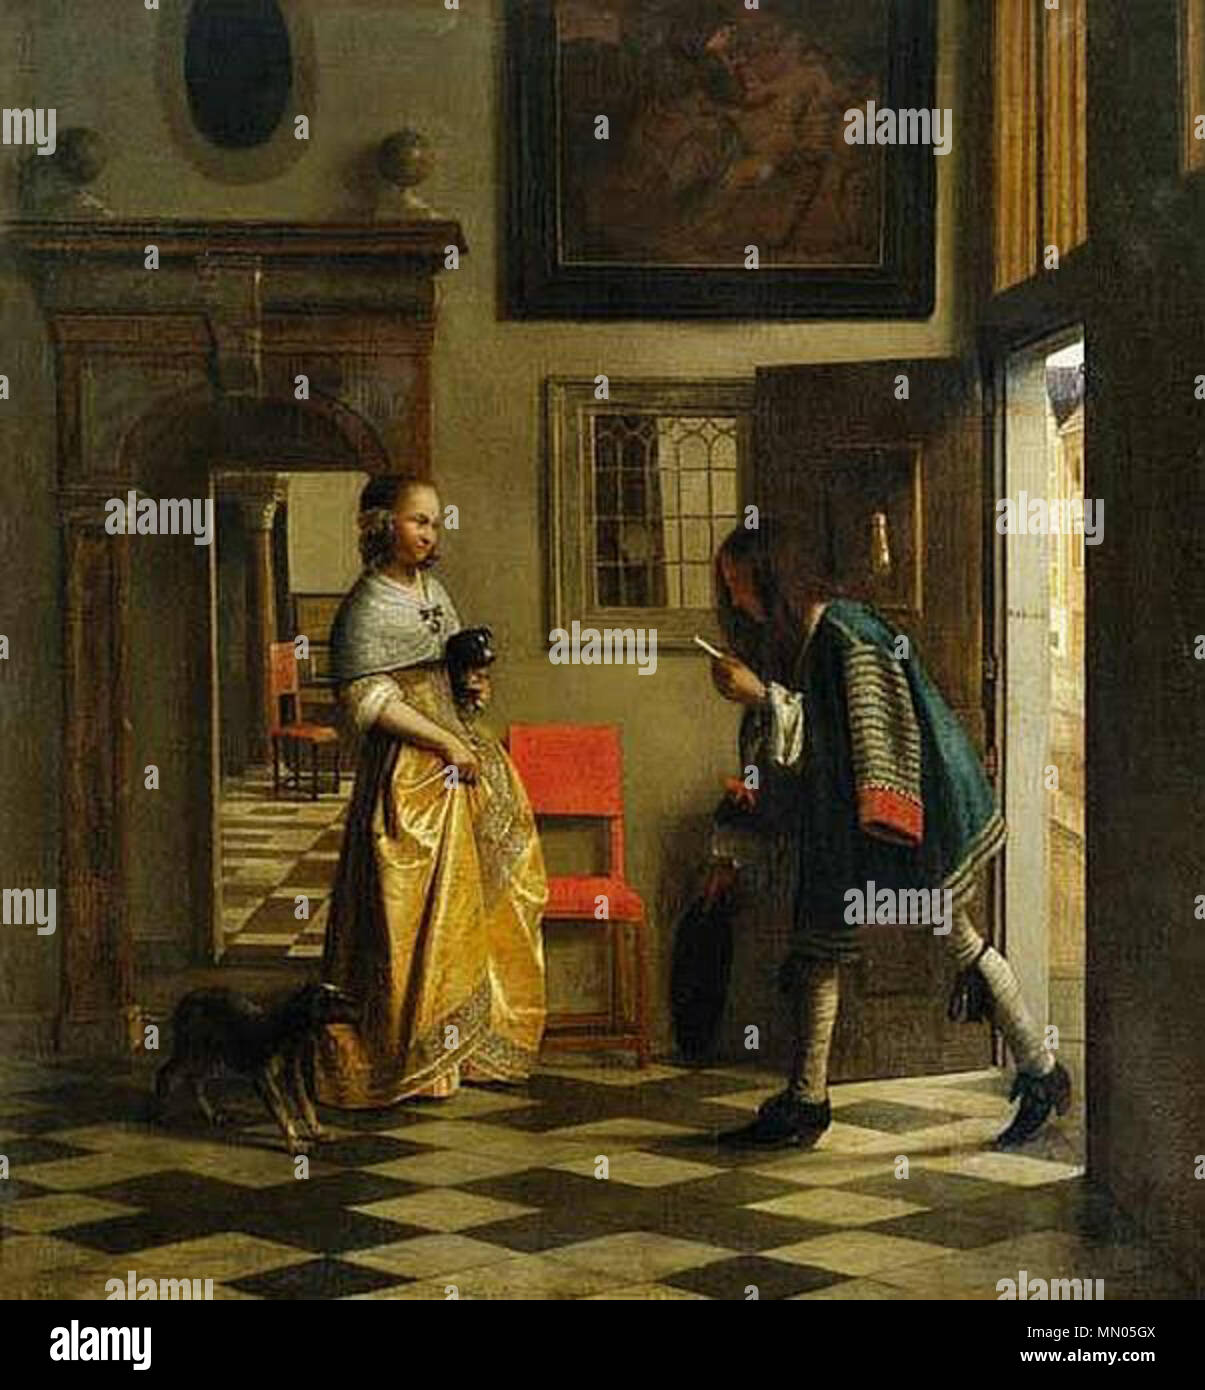 https://c8.alamy.com/comp/MN05GX/english-the-painting-on-the-wall-is-showing-a-detail-from-lot-and-his-daughters-after-hendrick-goltzius-young-woman-in-an-interieur-receiving-a-letter-circa-1670-pieter-de-hooch-young-woman-in-an-interior-receiving-a-letter-MN05GX.jpg